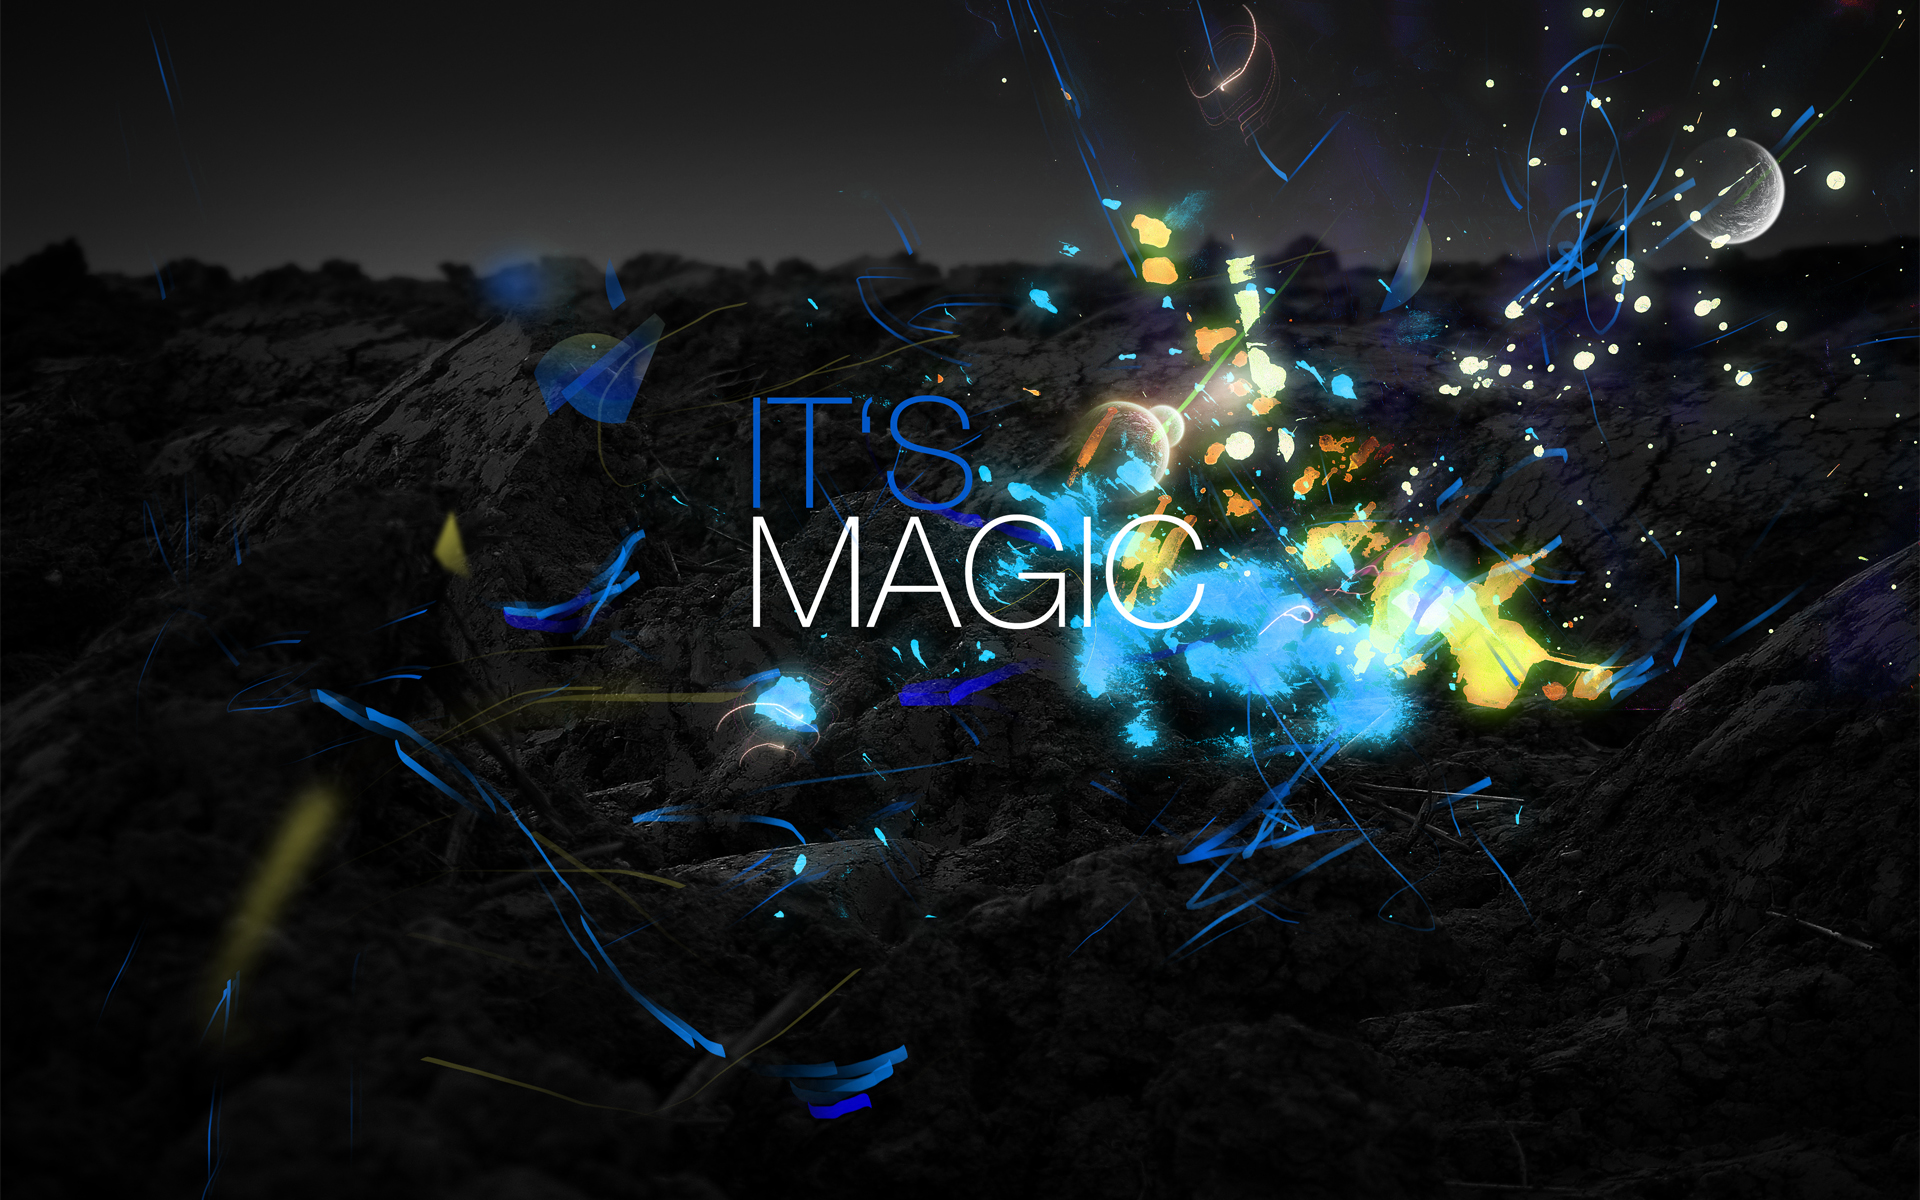 Free Magic Wallpaper